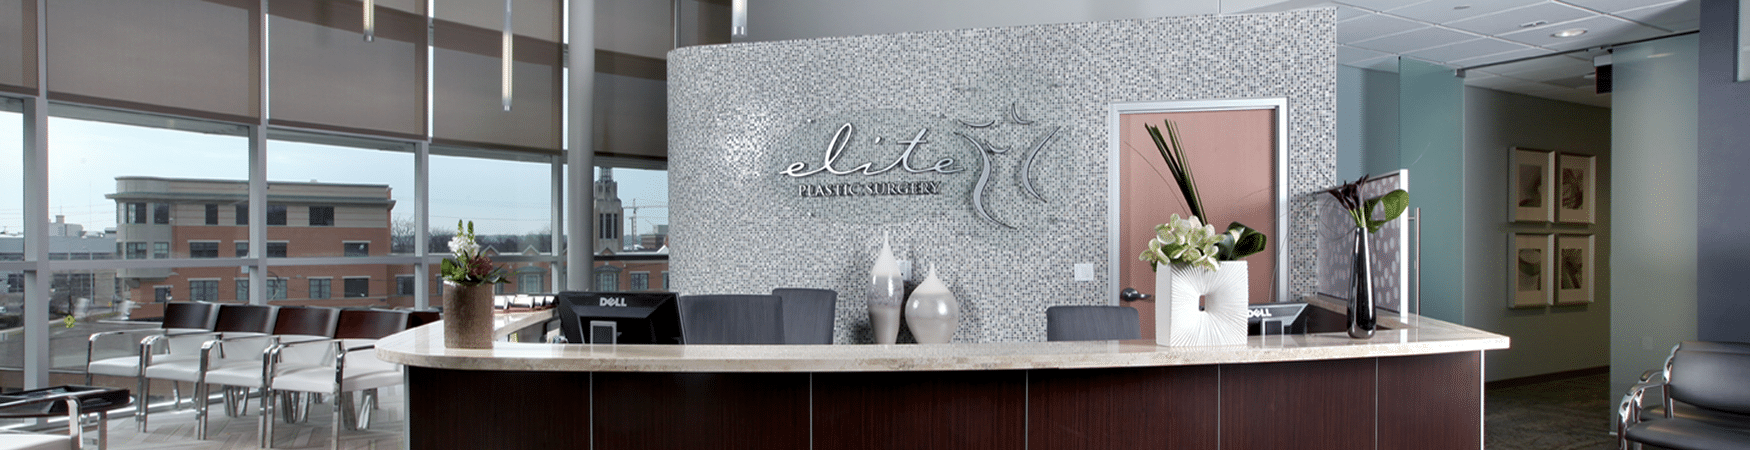 elite-plastic-surgery-office-